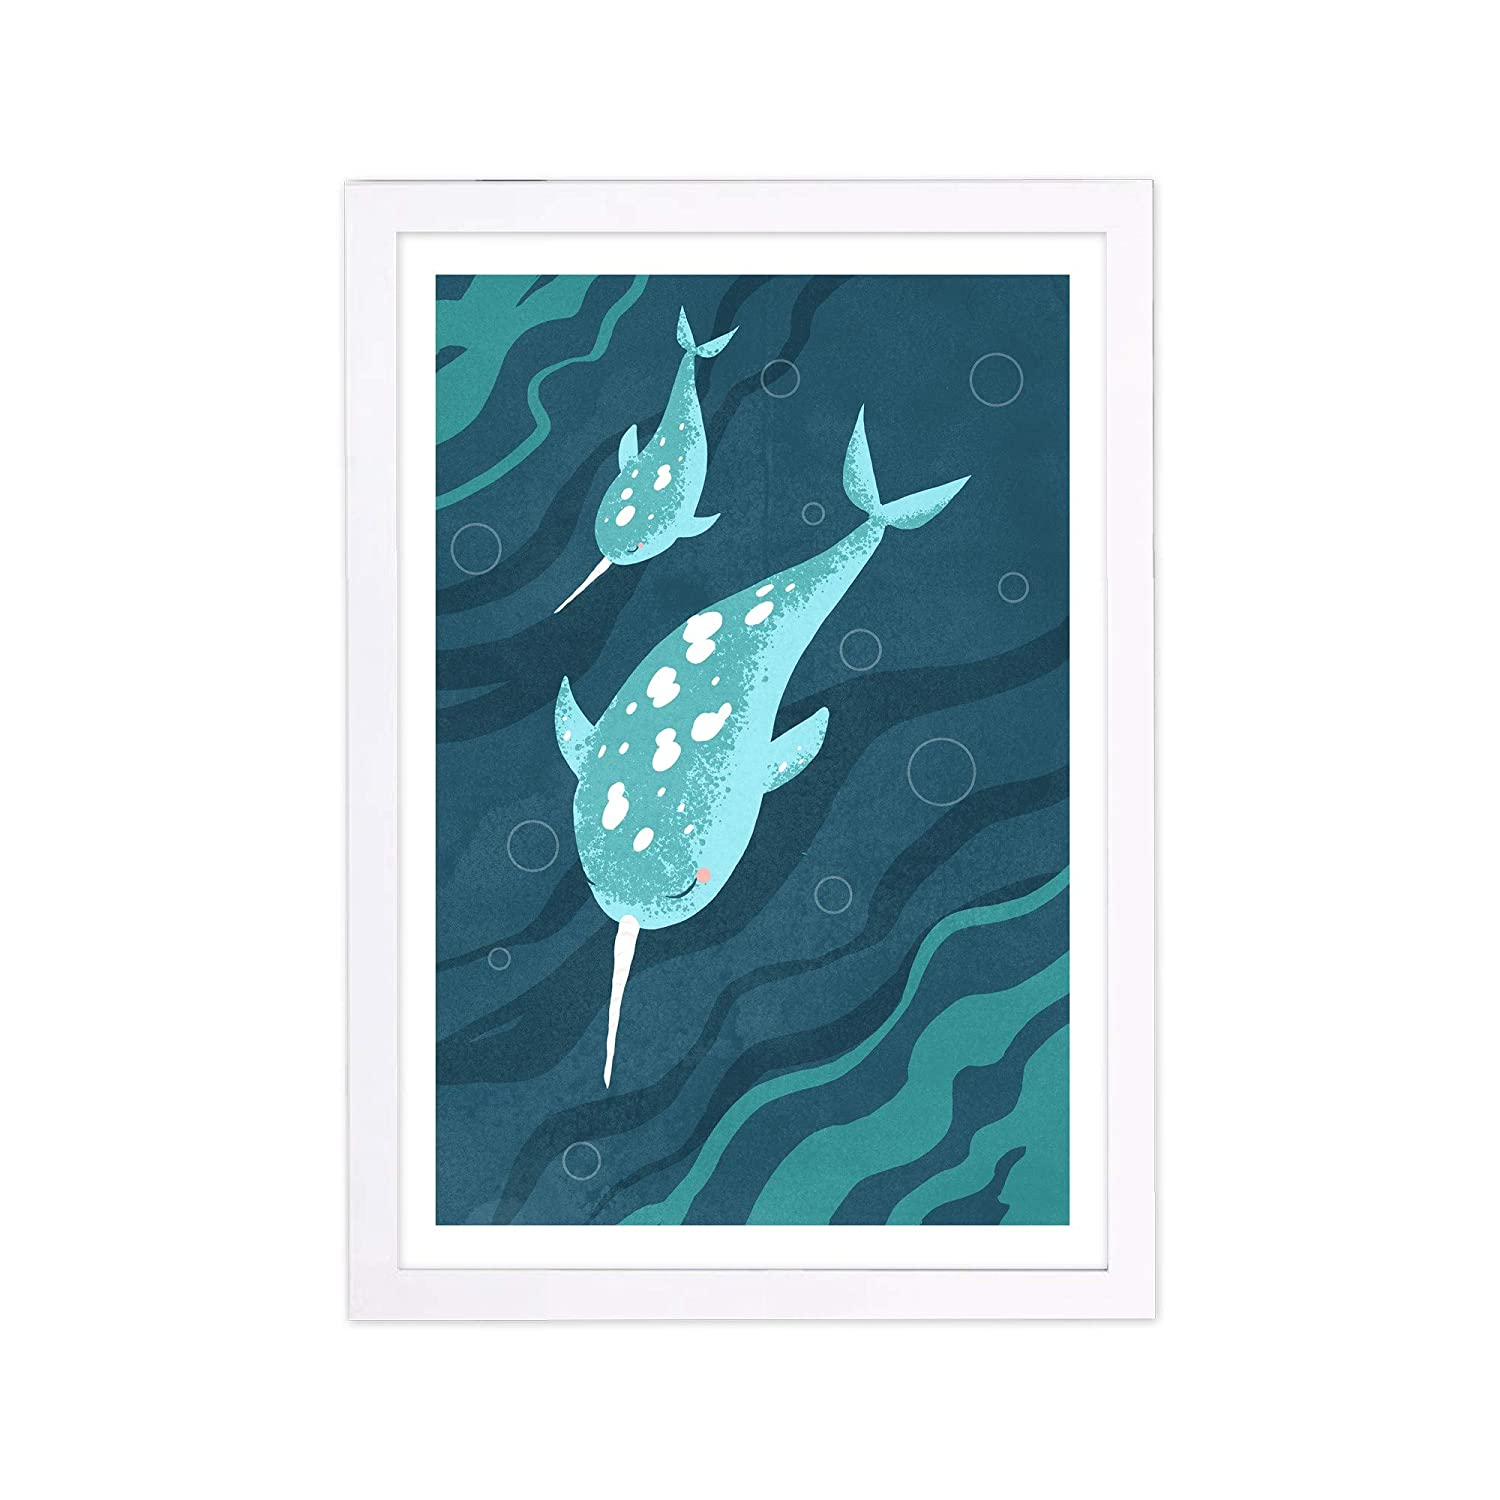 "Wynwood Studio Animals Framed Wall Art Prints 'Narwhals' Home Décor, 13"" x 19"", Blue, White"